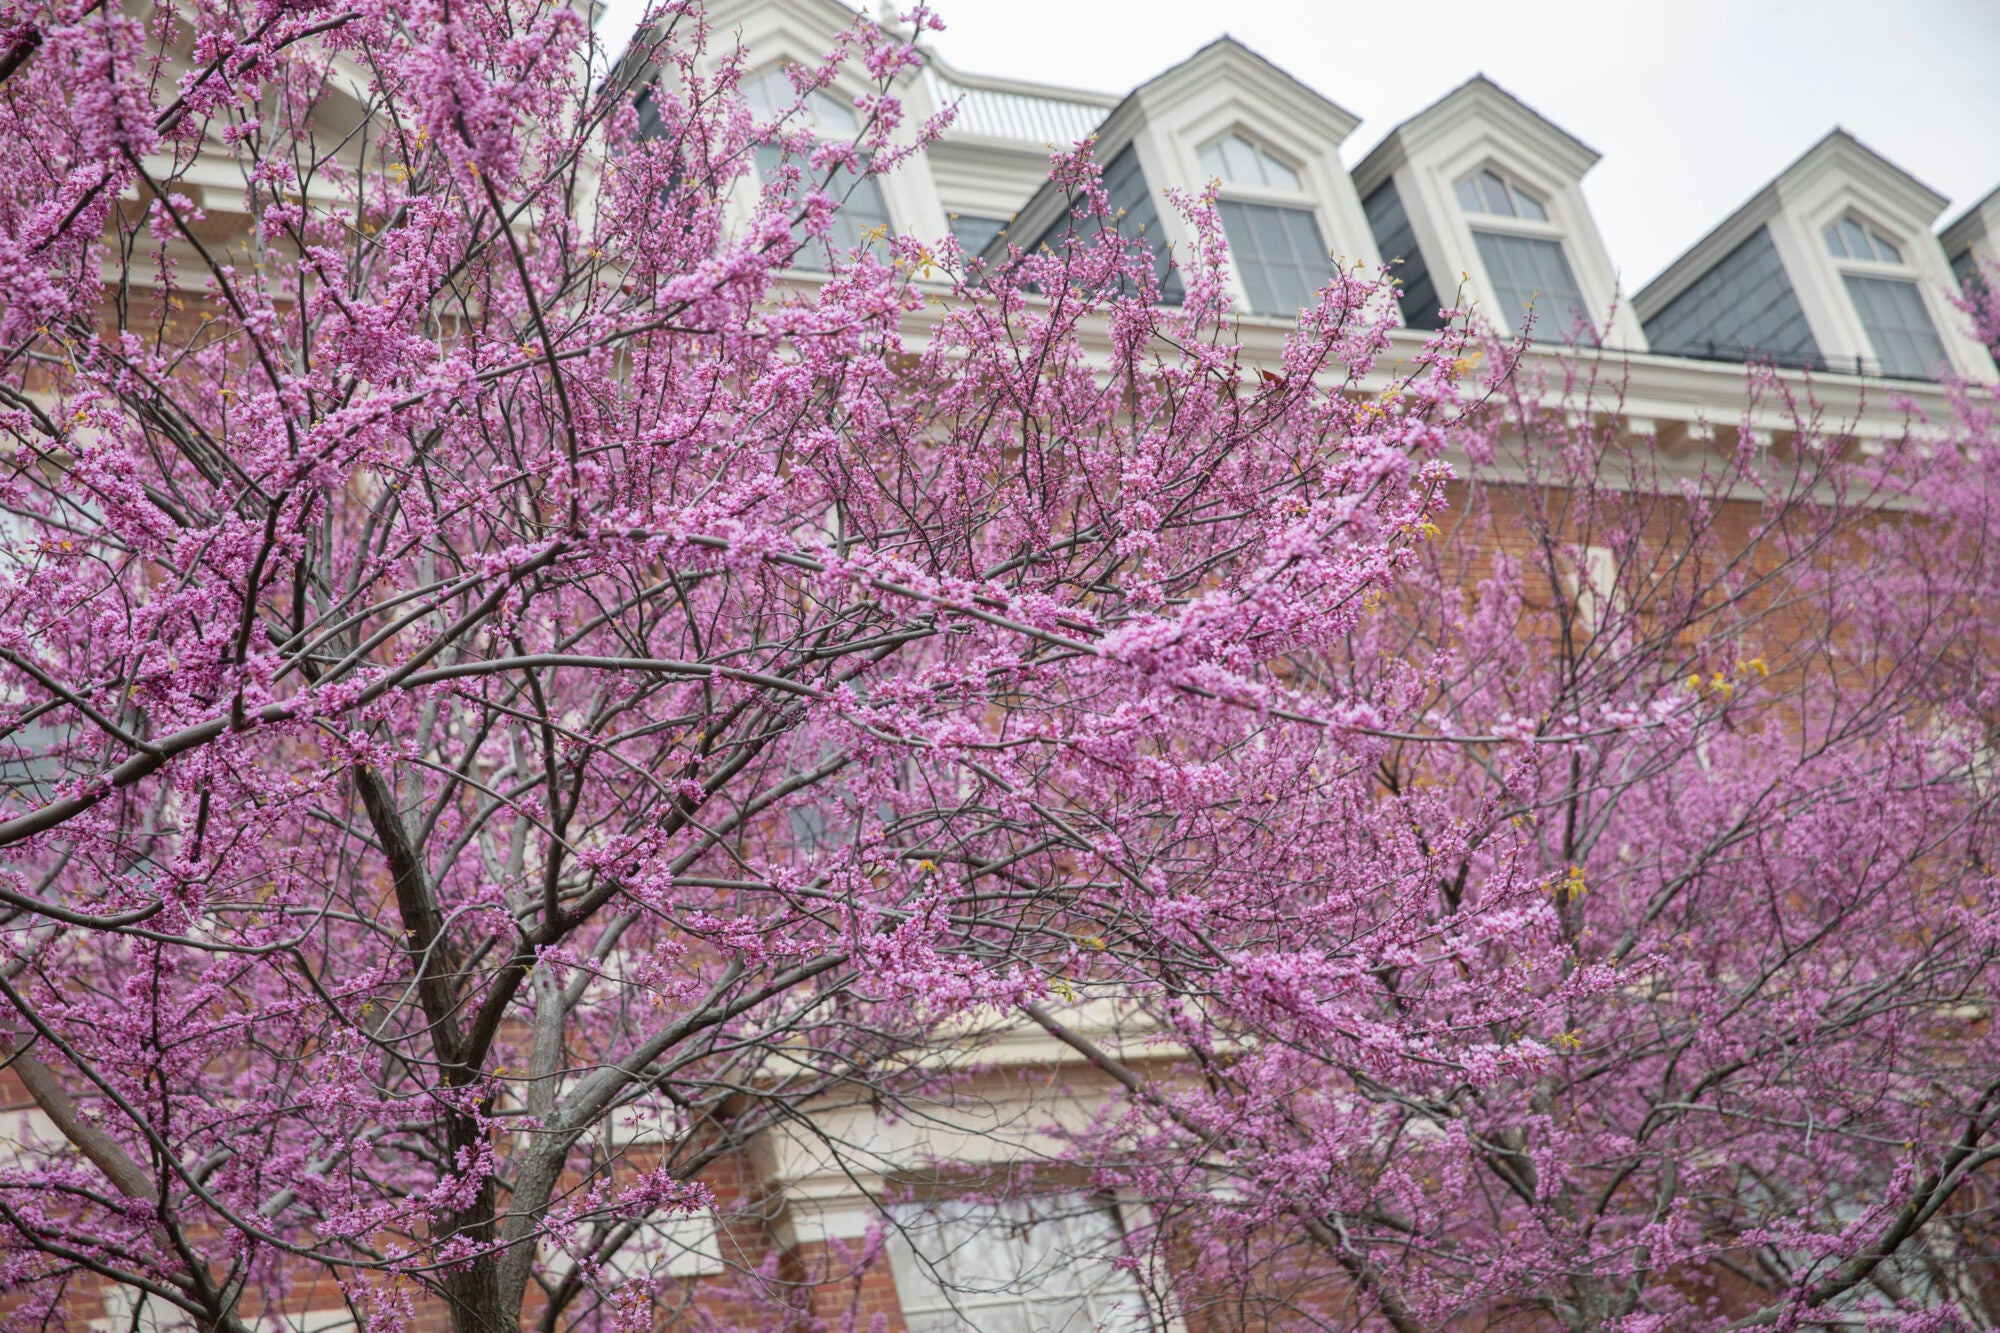 tiny pink flowers on a tree in front of a brick building